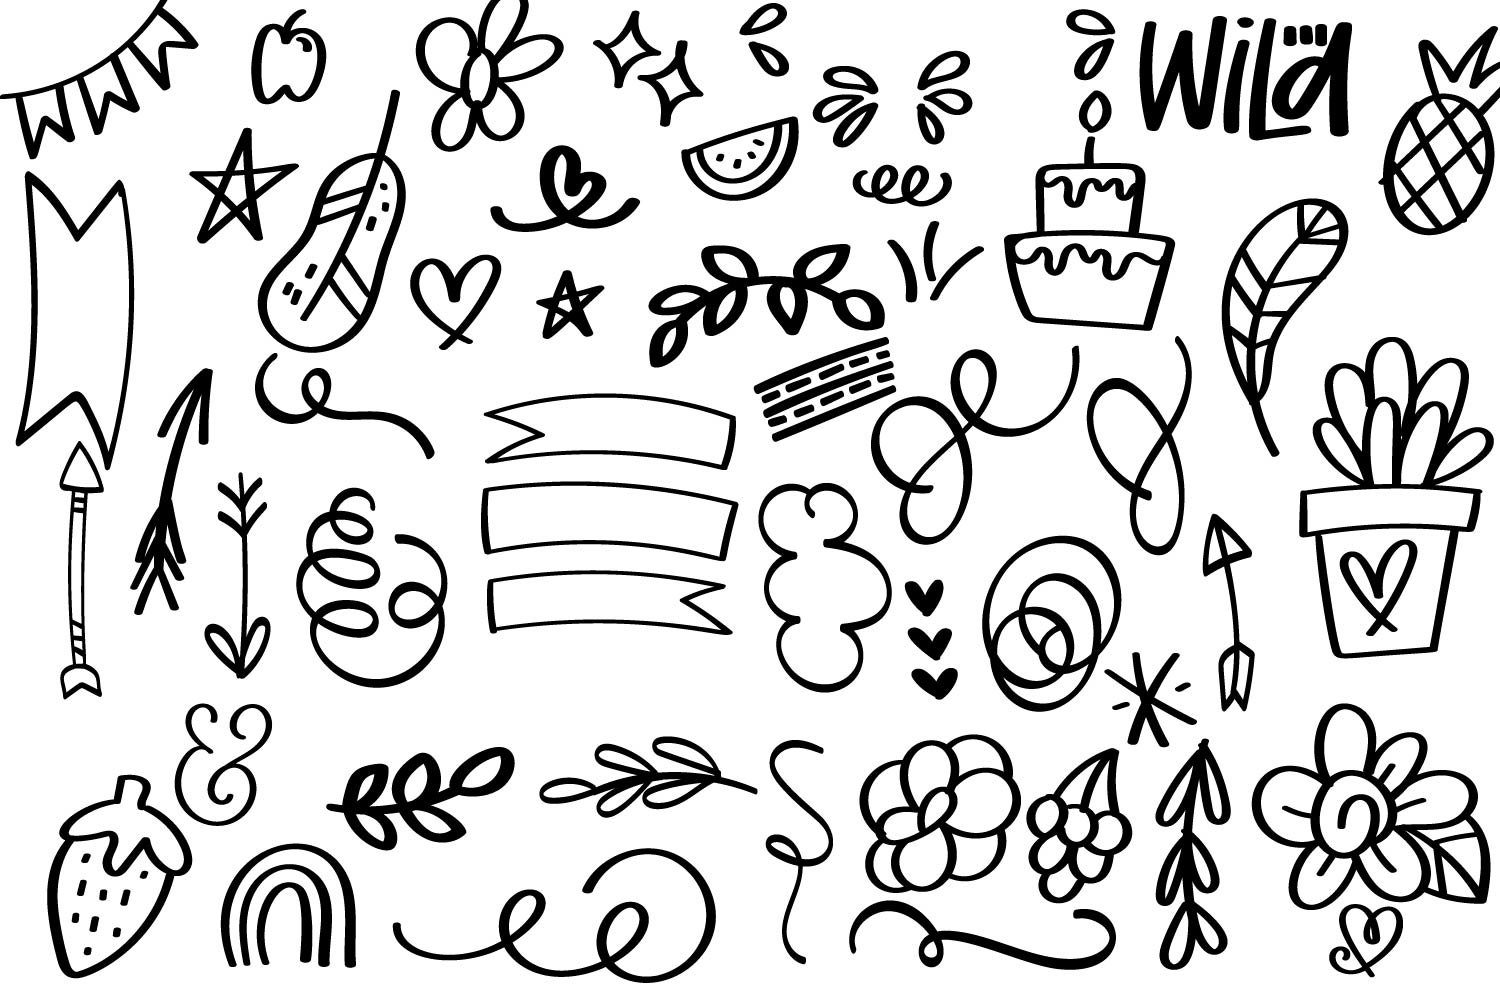 Silly Bits - A Hand Drawn Doodle Font example image 2